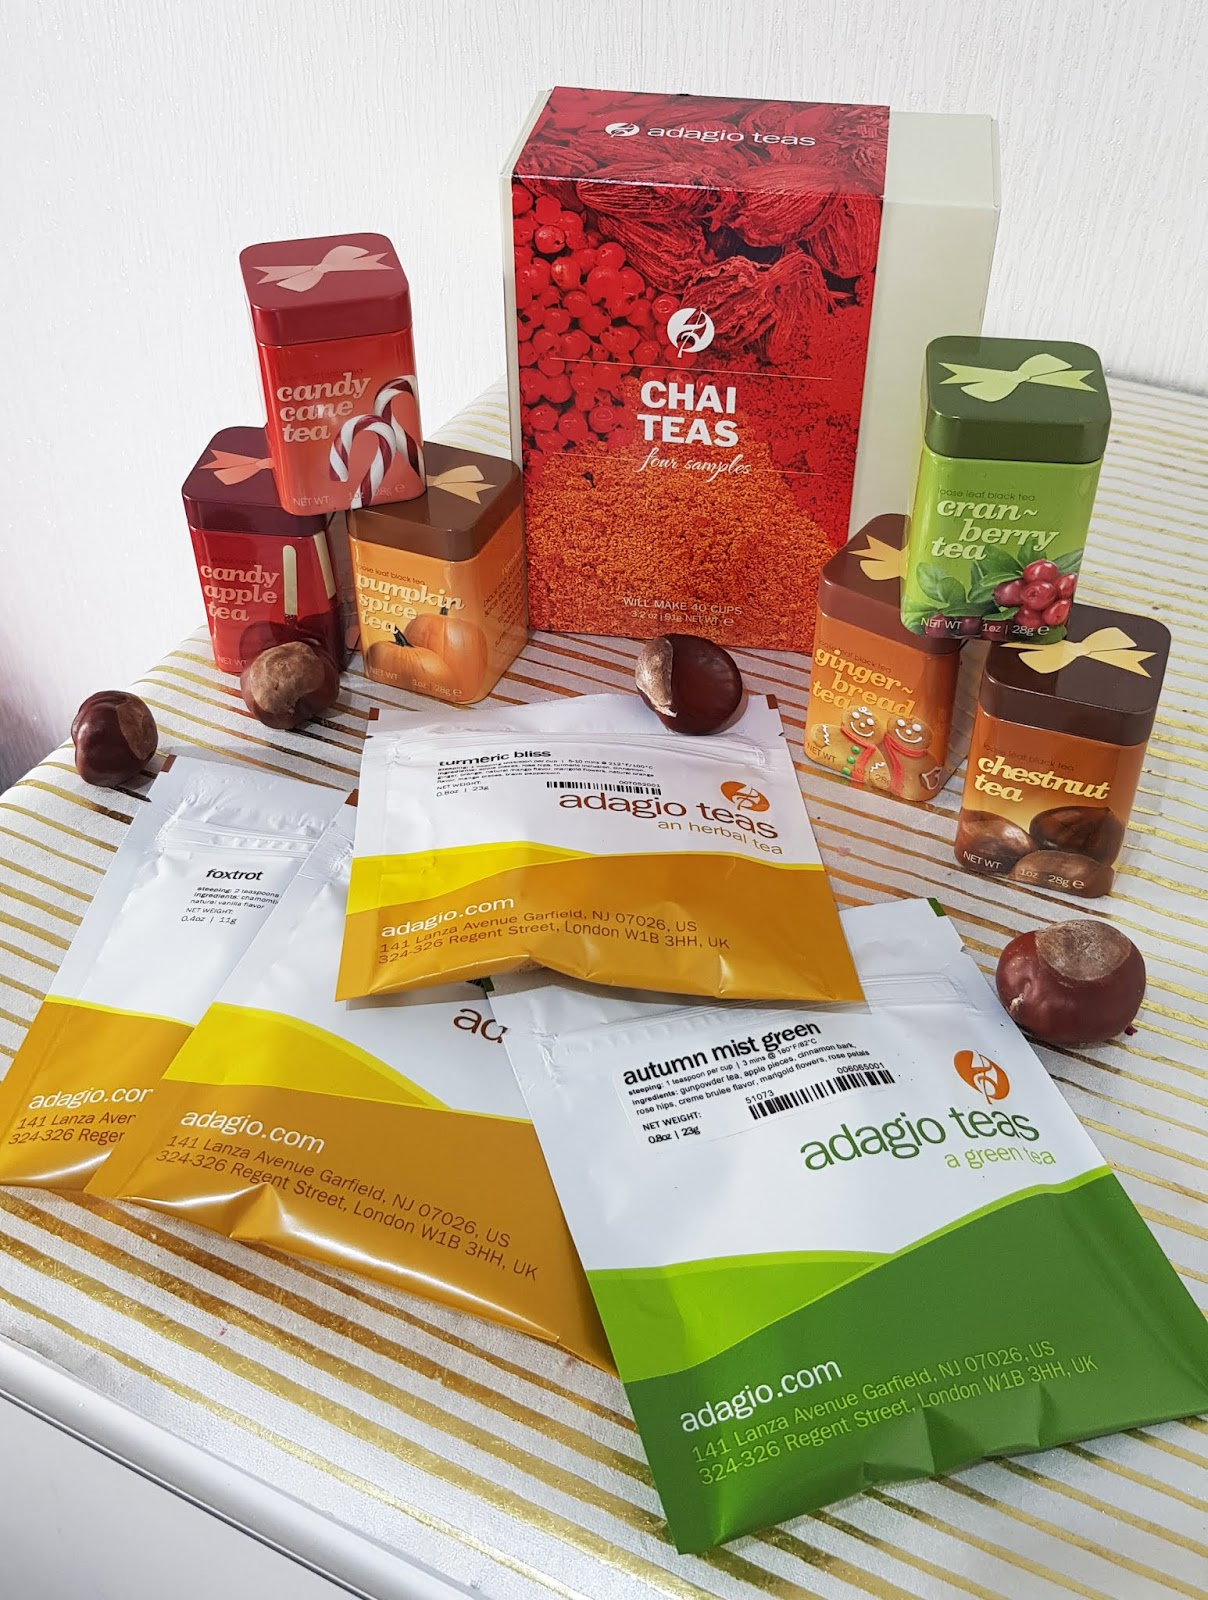 Selection of teas from Adagio Teas for the autumn/fall and winter seasons including Yuletide Toddy